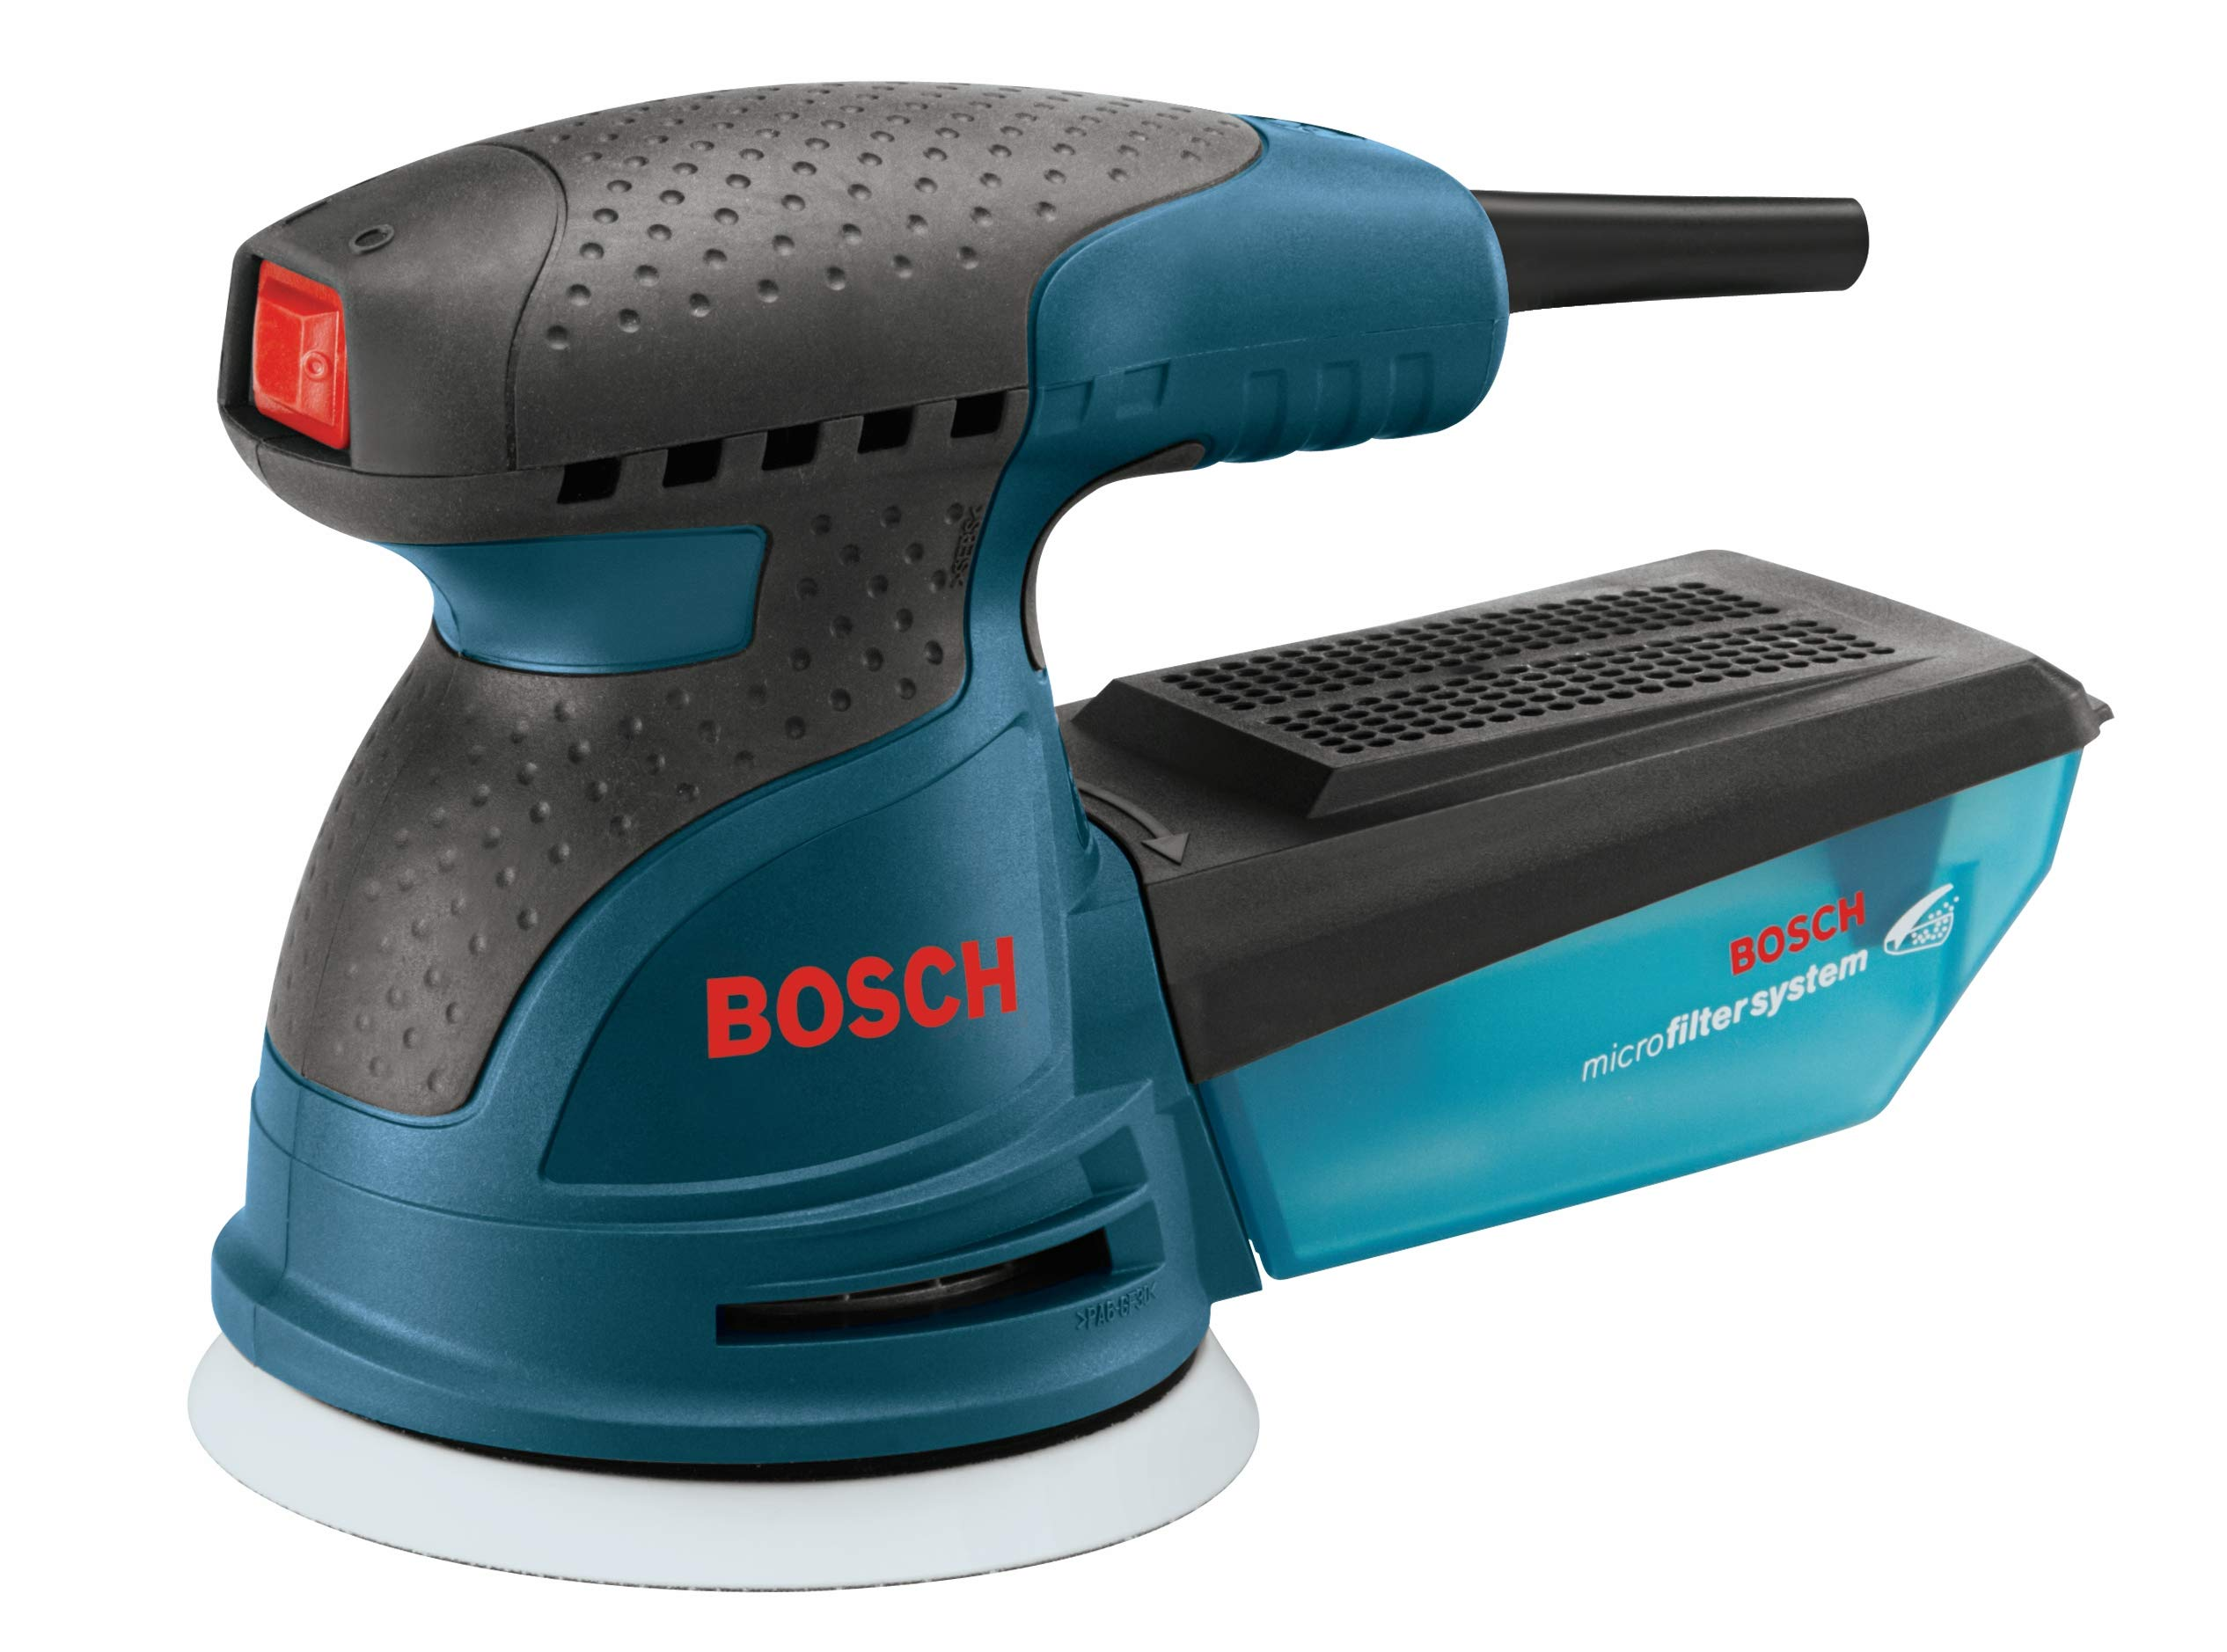 Bosch Random Orbit 5 inch Sander/Polisher ROS20VSC with Carrying Bag